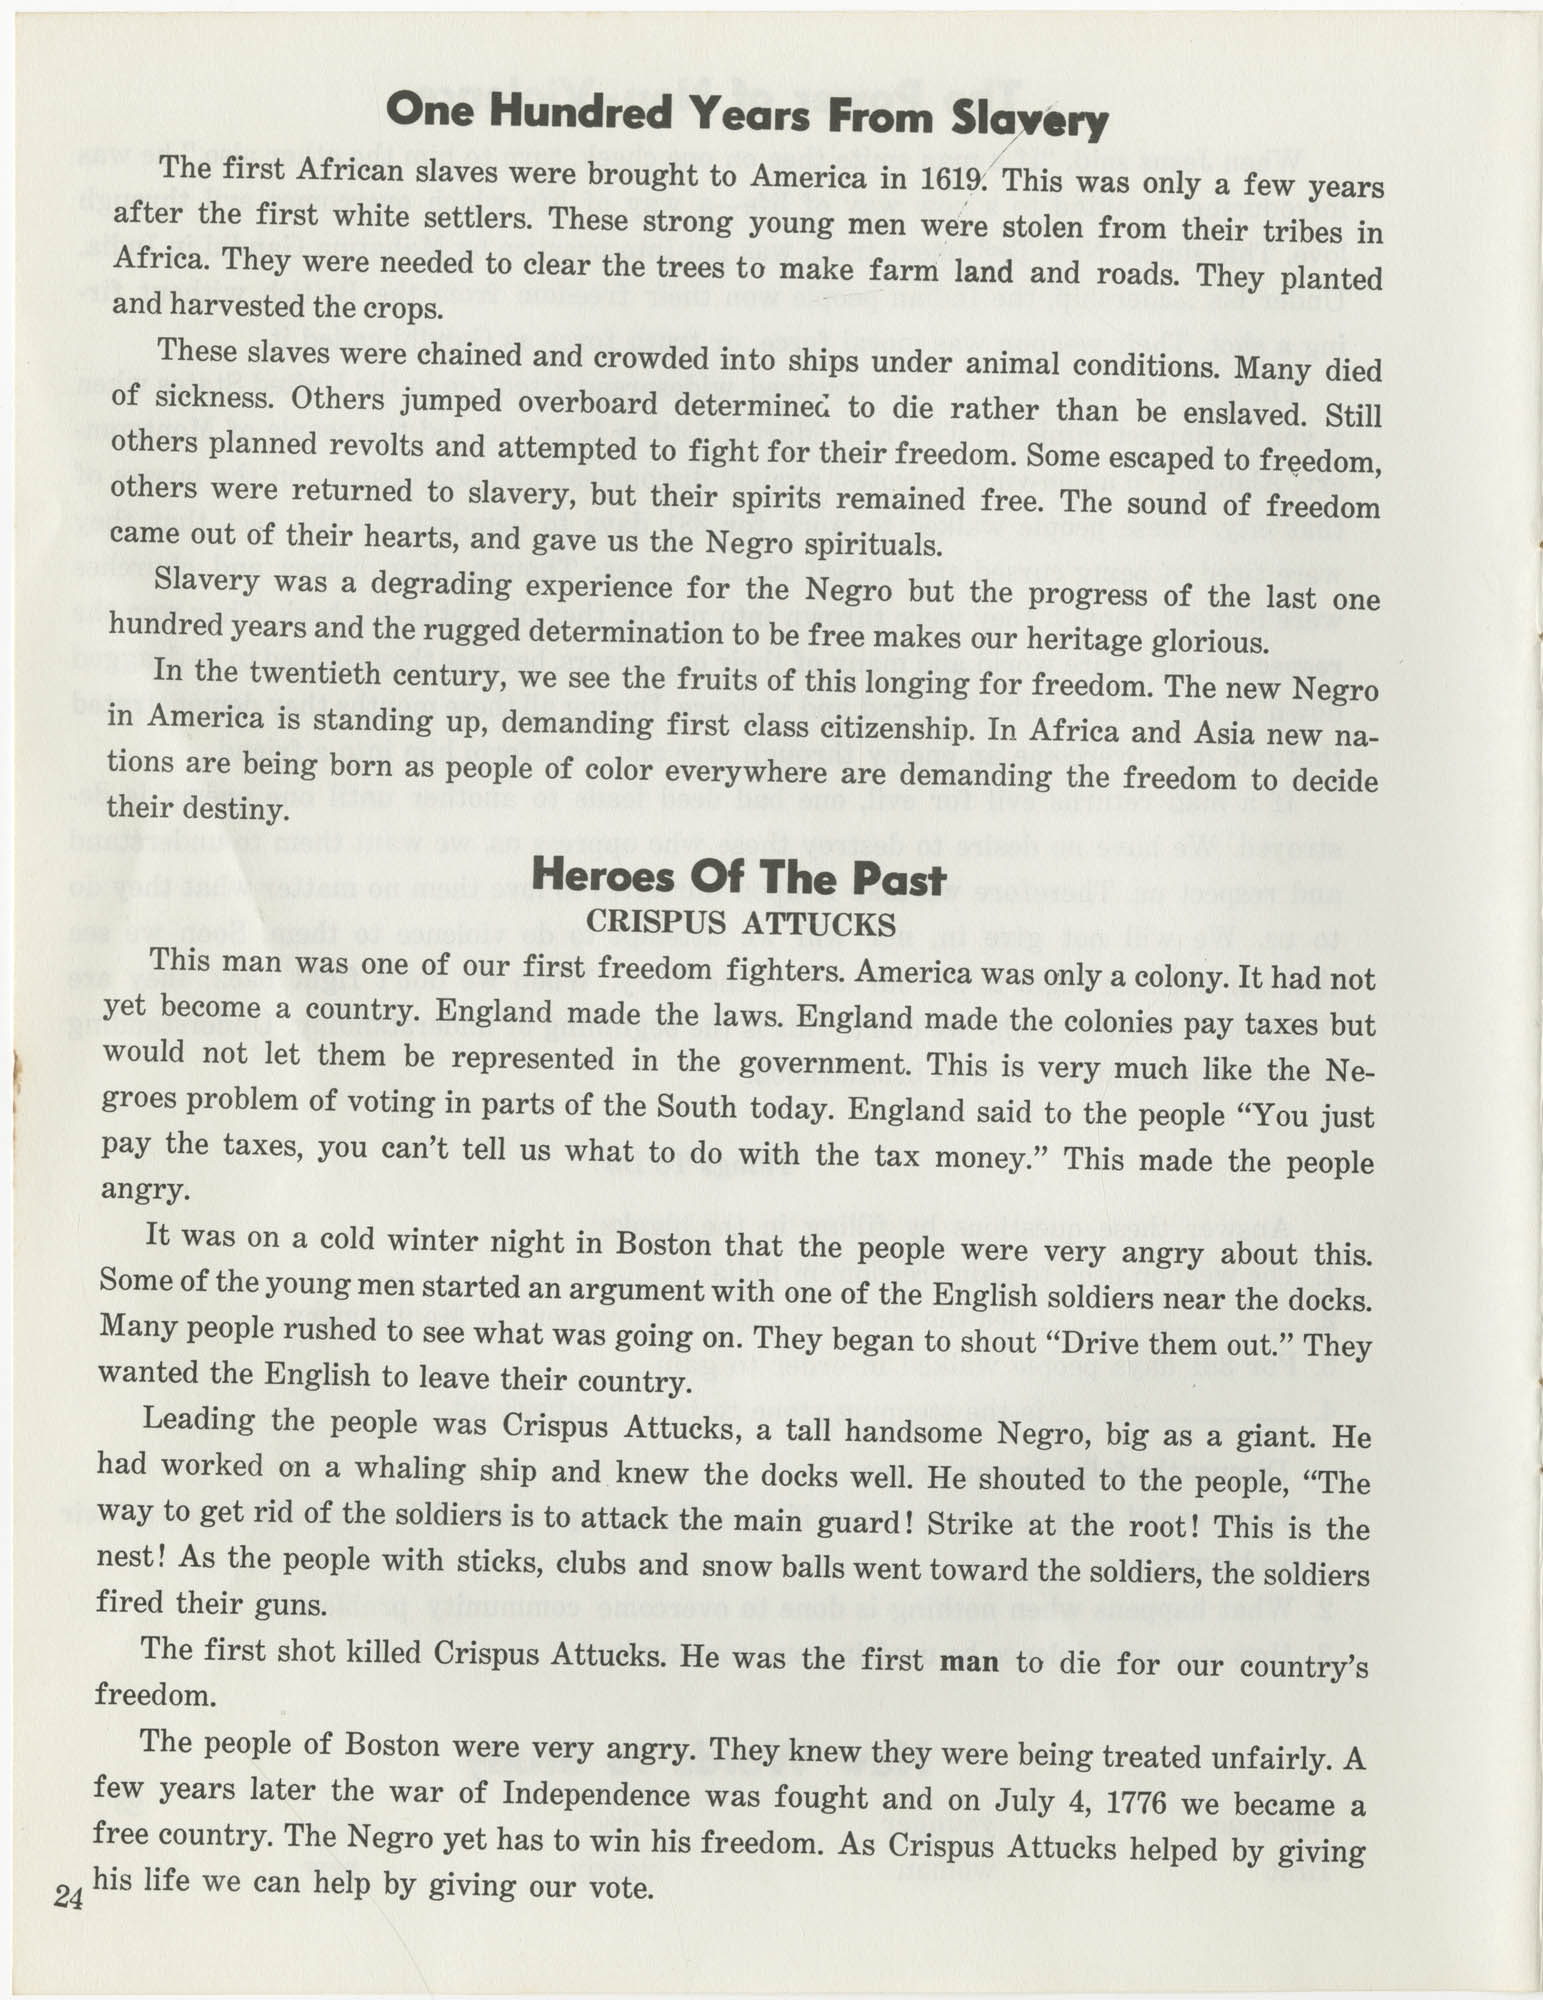 Southern Christian Leadership Conference Citizenship School Workbook, Page 24